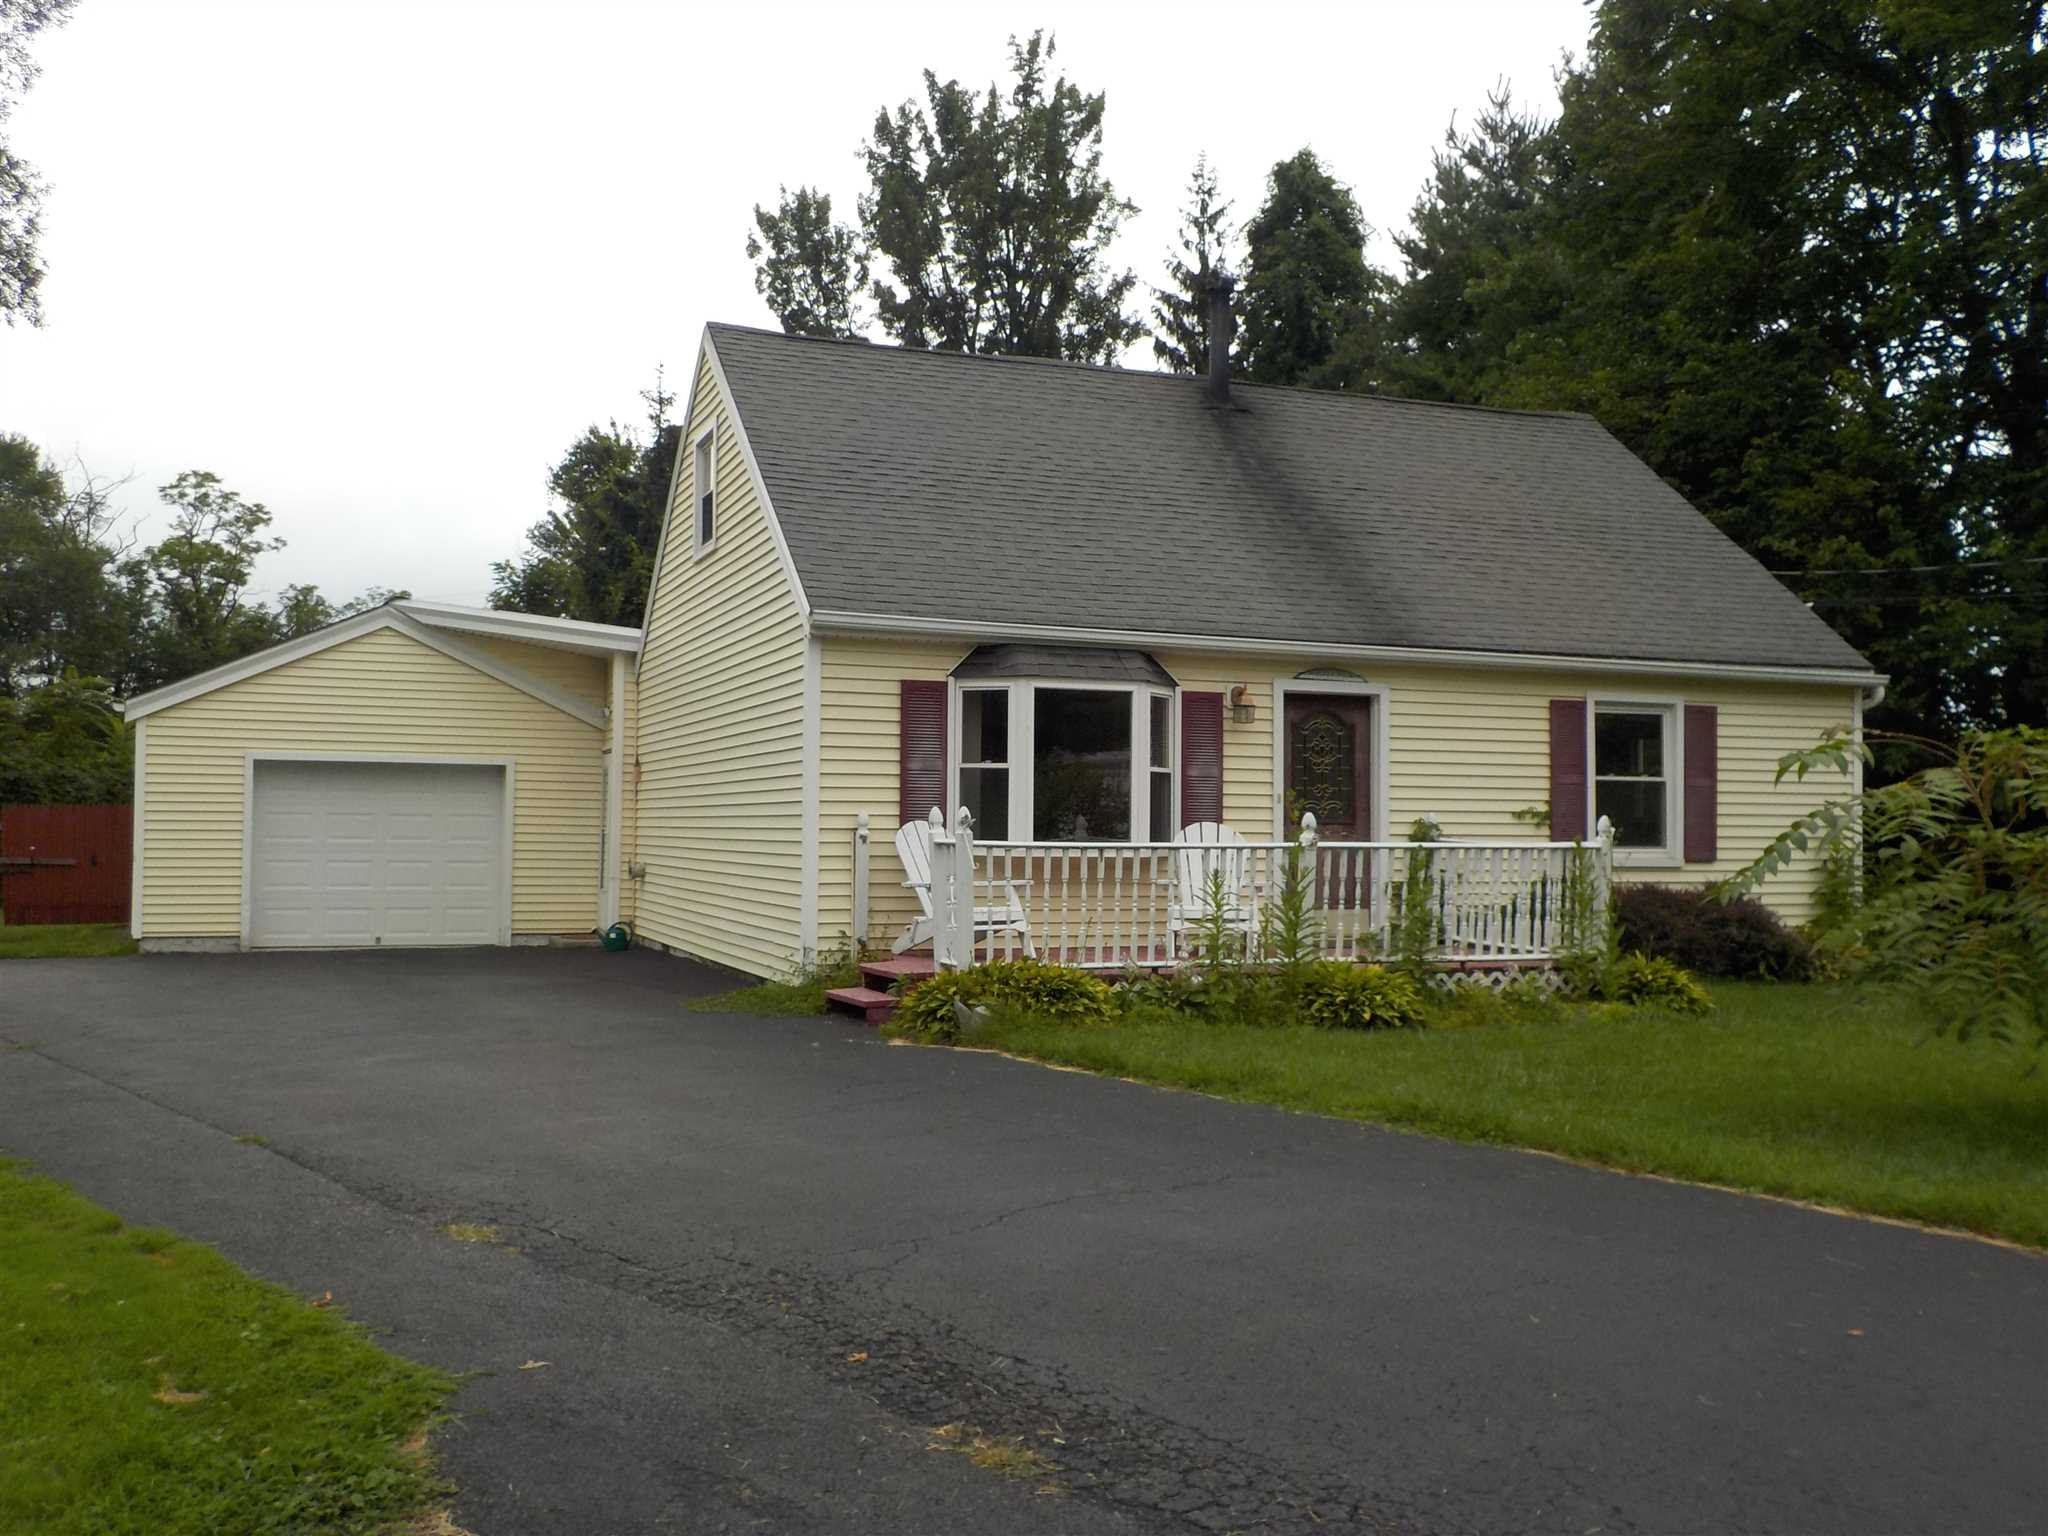 Single Family Home for Sale at 7 W. DOGWOOD DRIVE 7 W. DOGWOOD DRIVE Poughkeepsie, New York 12601 United States